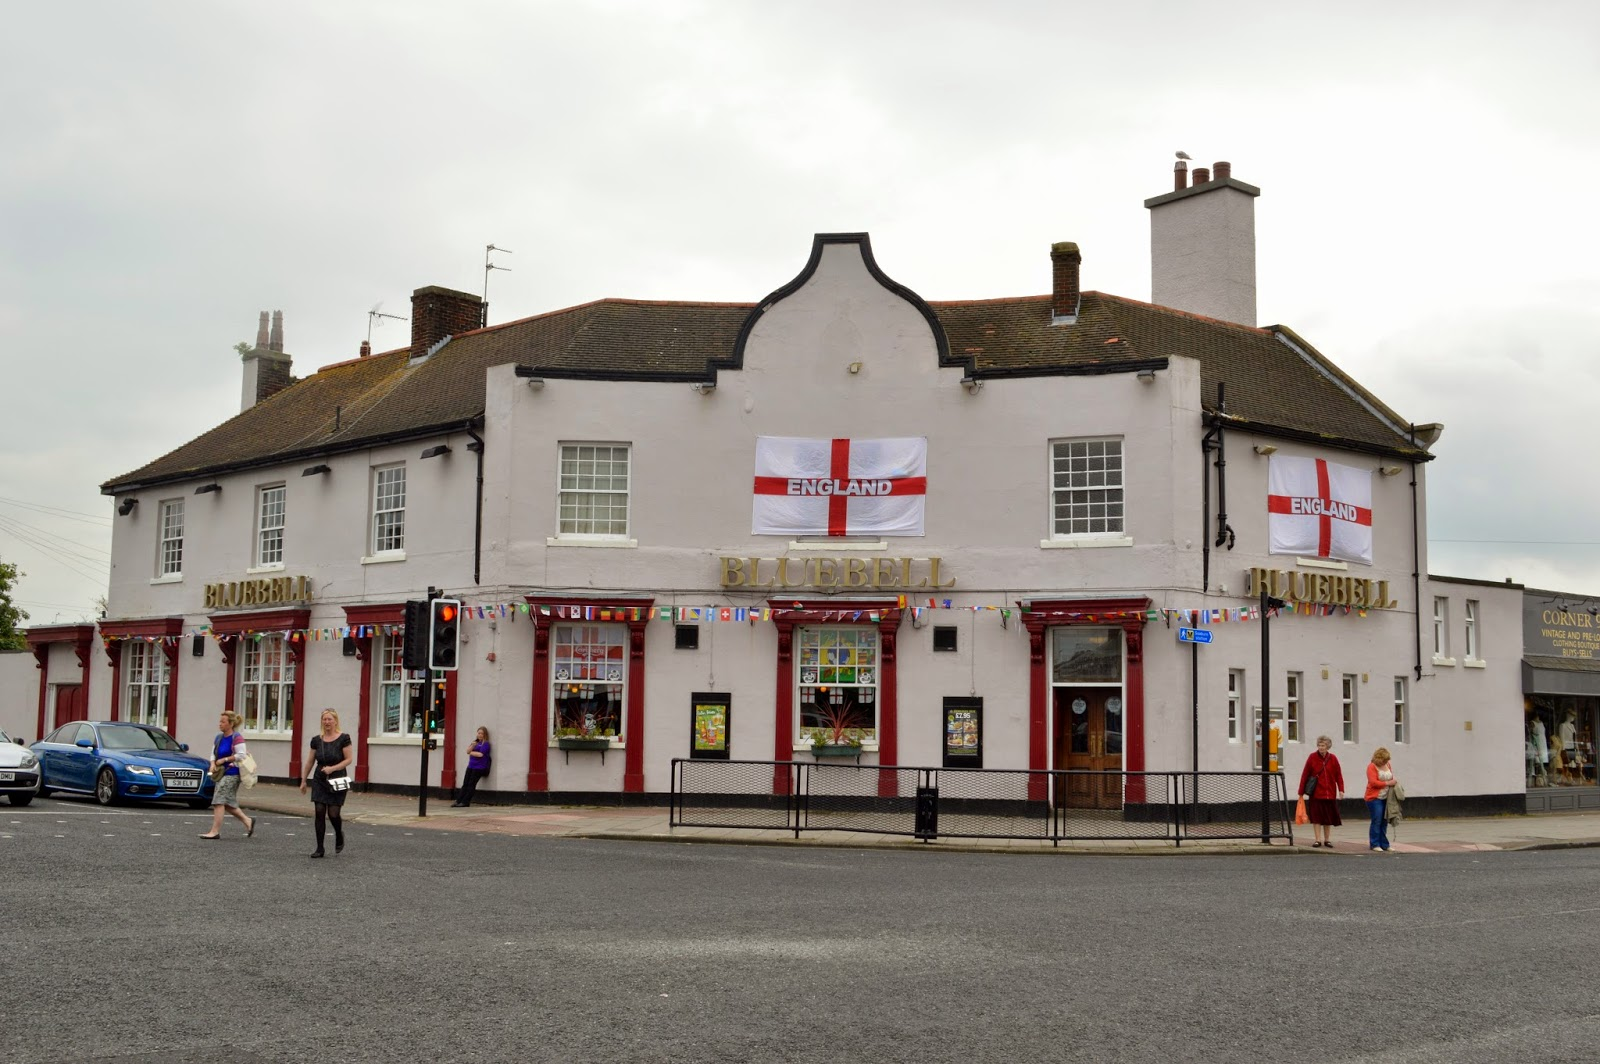 pubs and flags in sunderland daniel jenks